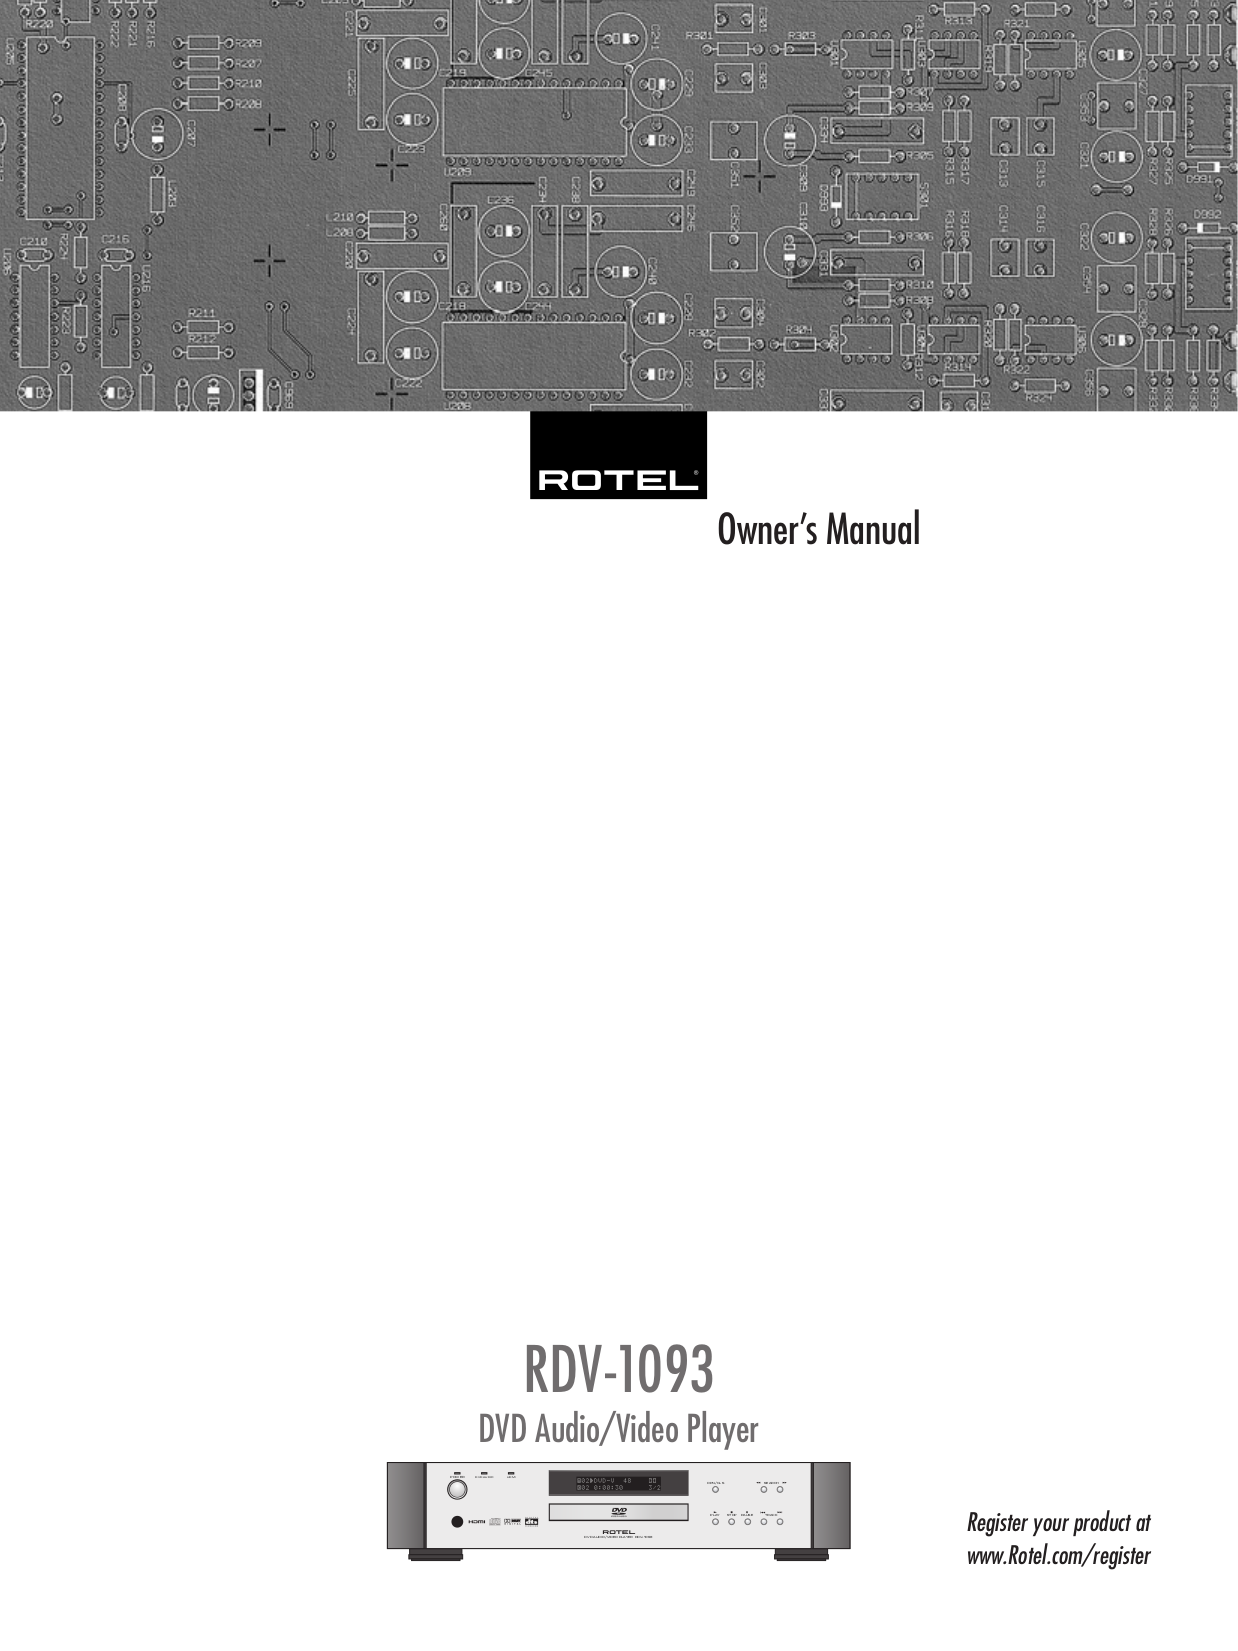 pdf for Rotel Amp RSP-1068 manual